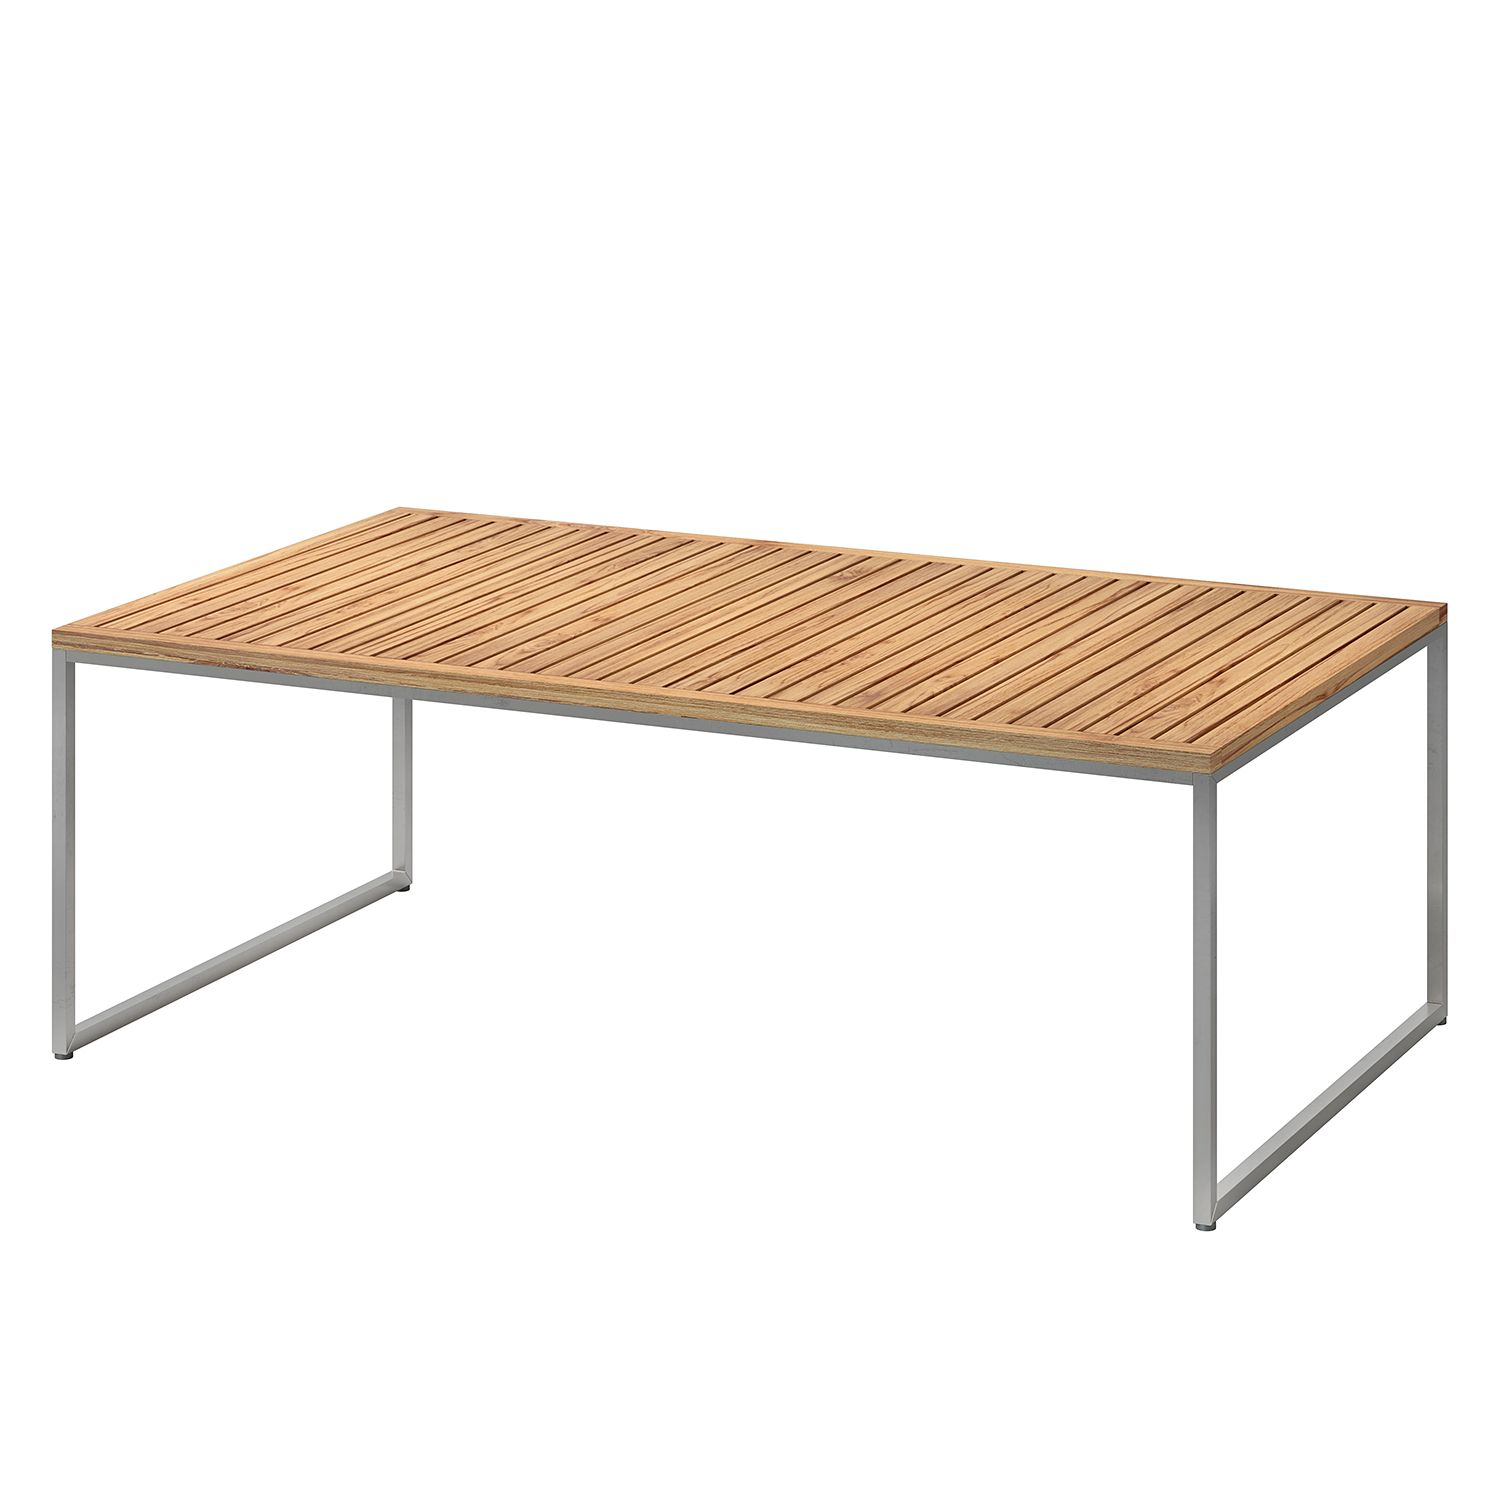 Table basse Teakline Exclusif